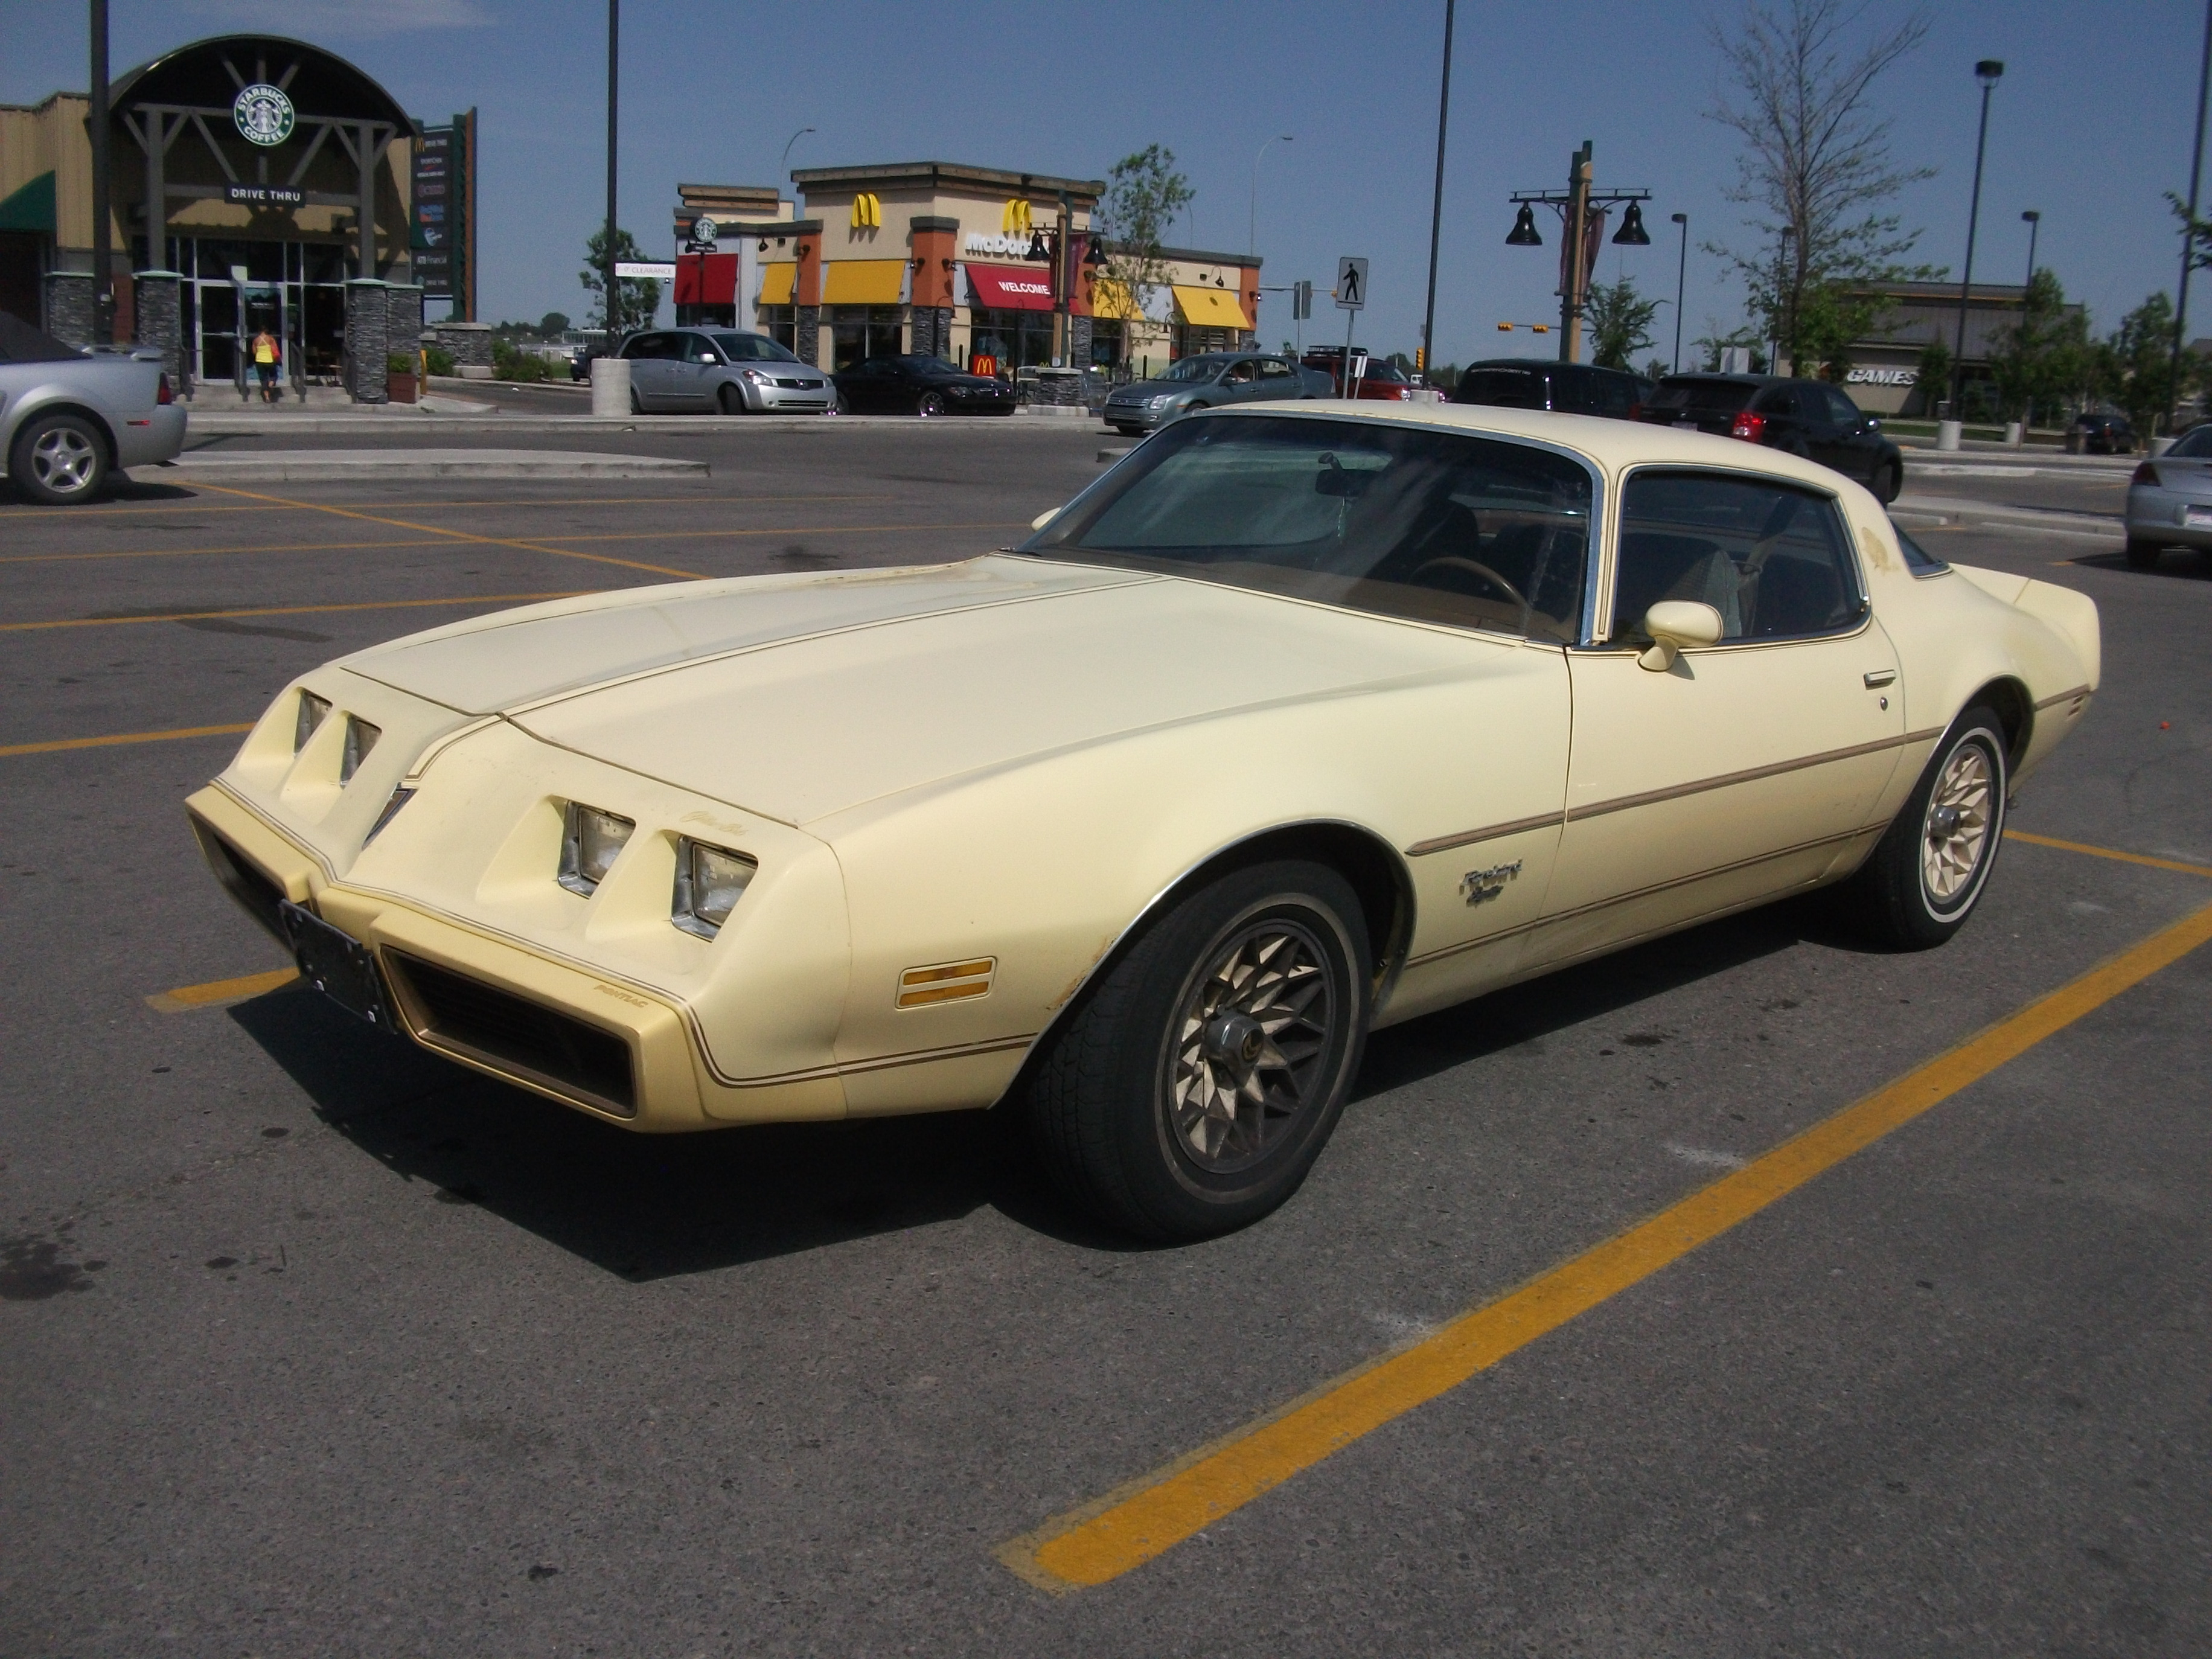 1980 Pontiac Firebird Esprit Yellow Bird | Flickr - Photo Sharing!